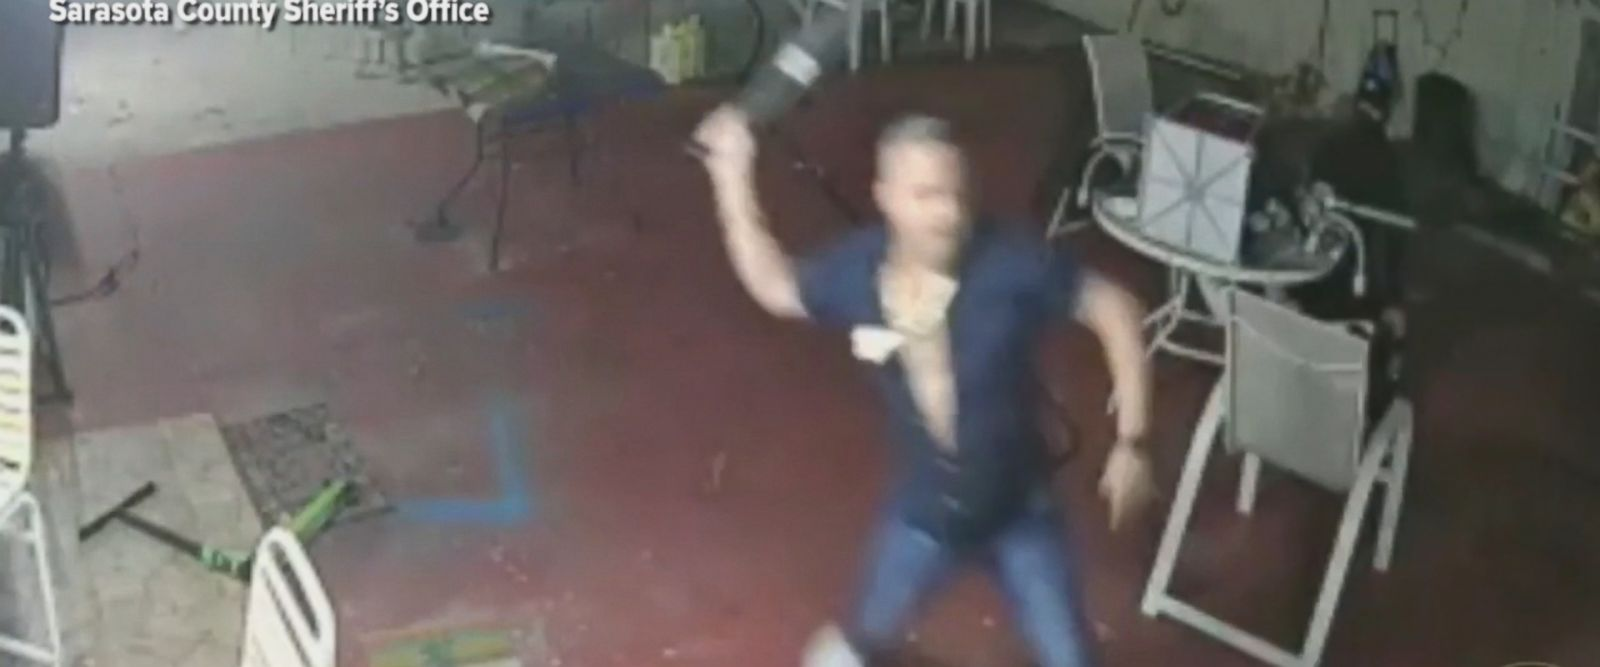 A Florida homeowner was able to disarm an alleged robber by using a machete.